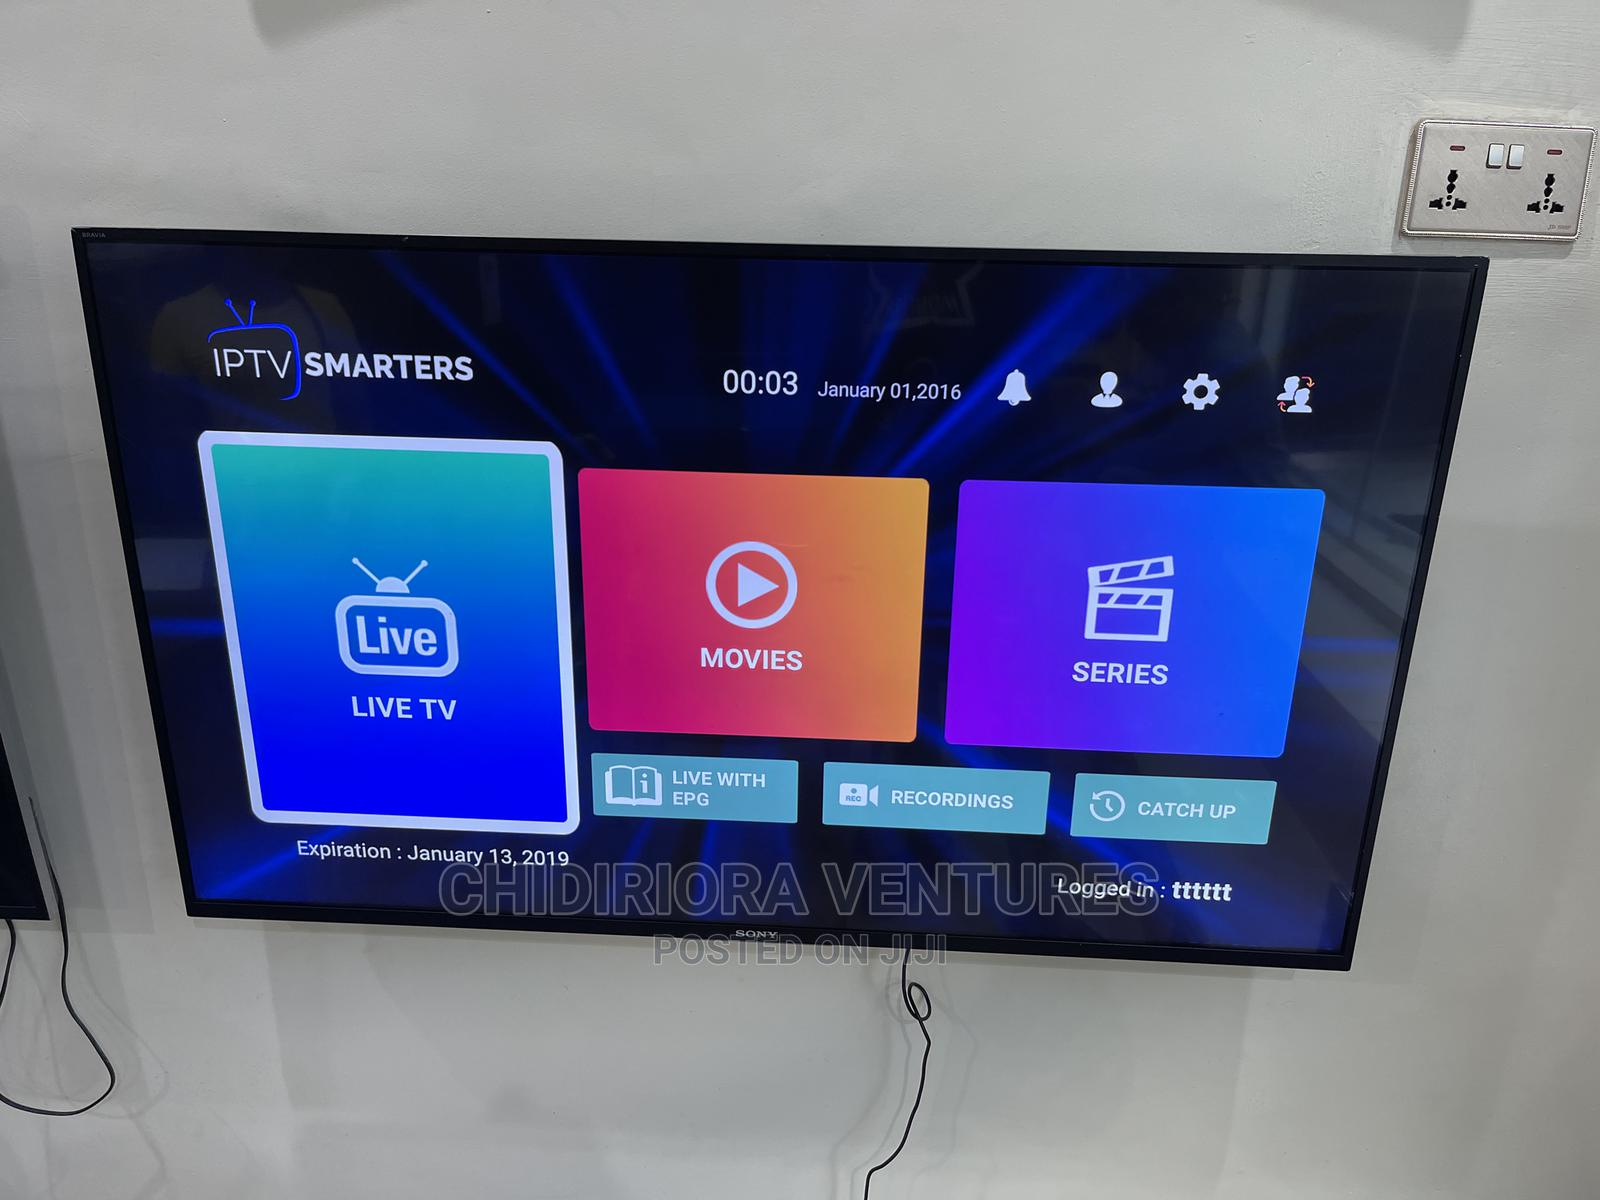 """Sony Bravia Kd49xe8005 LED Hdr 4K Ultra HD Android Tv, 49"""" 